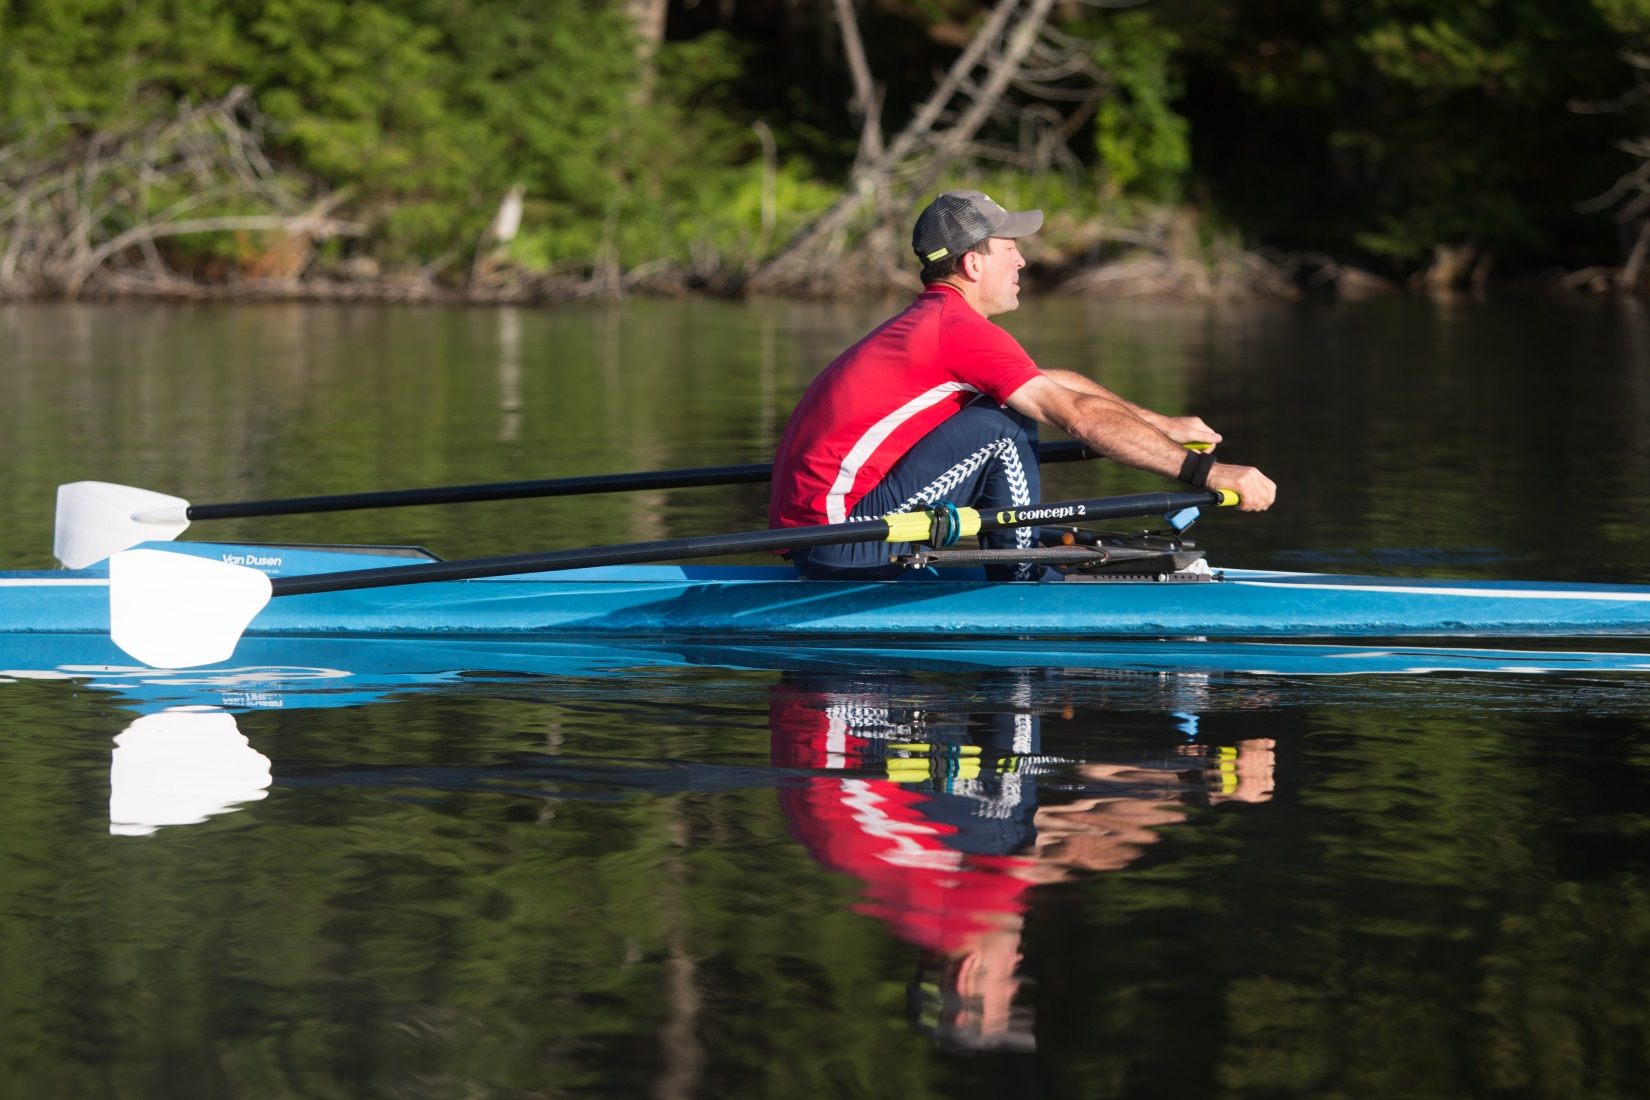 Concept2 launches the new Compact blade on the Bantam scull. The Bantam is a lower-priced scull with additional durability that maintains high performance.